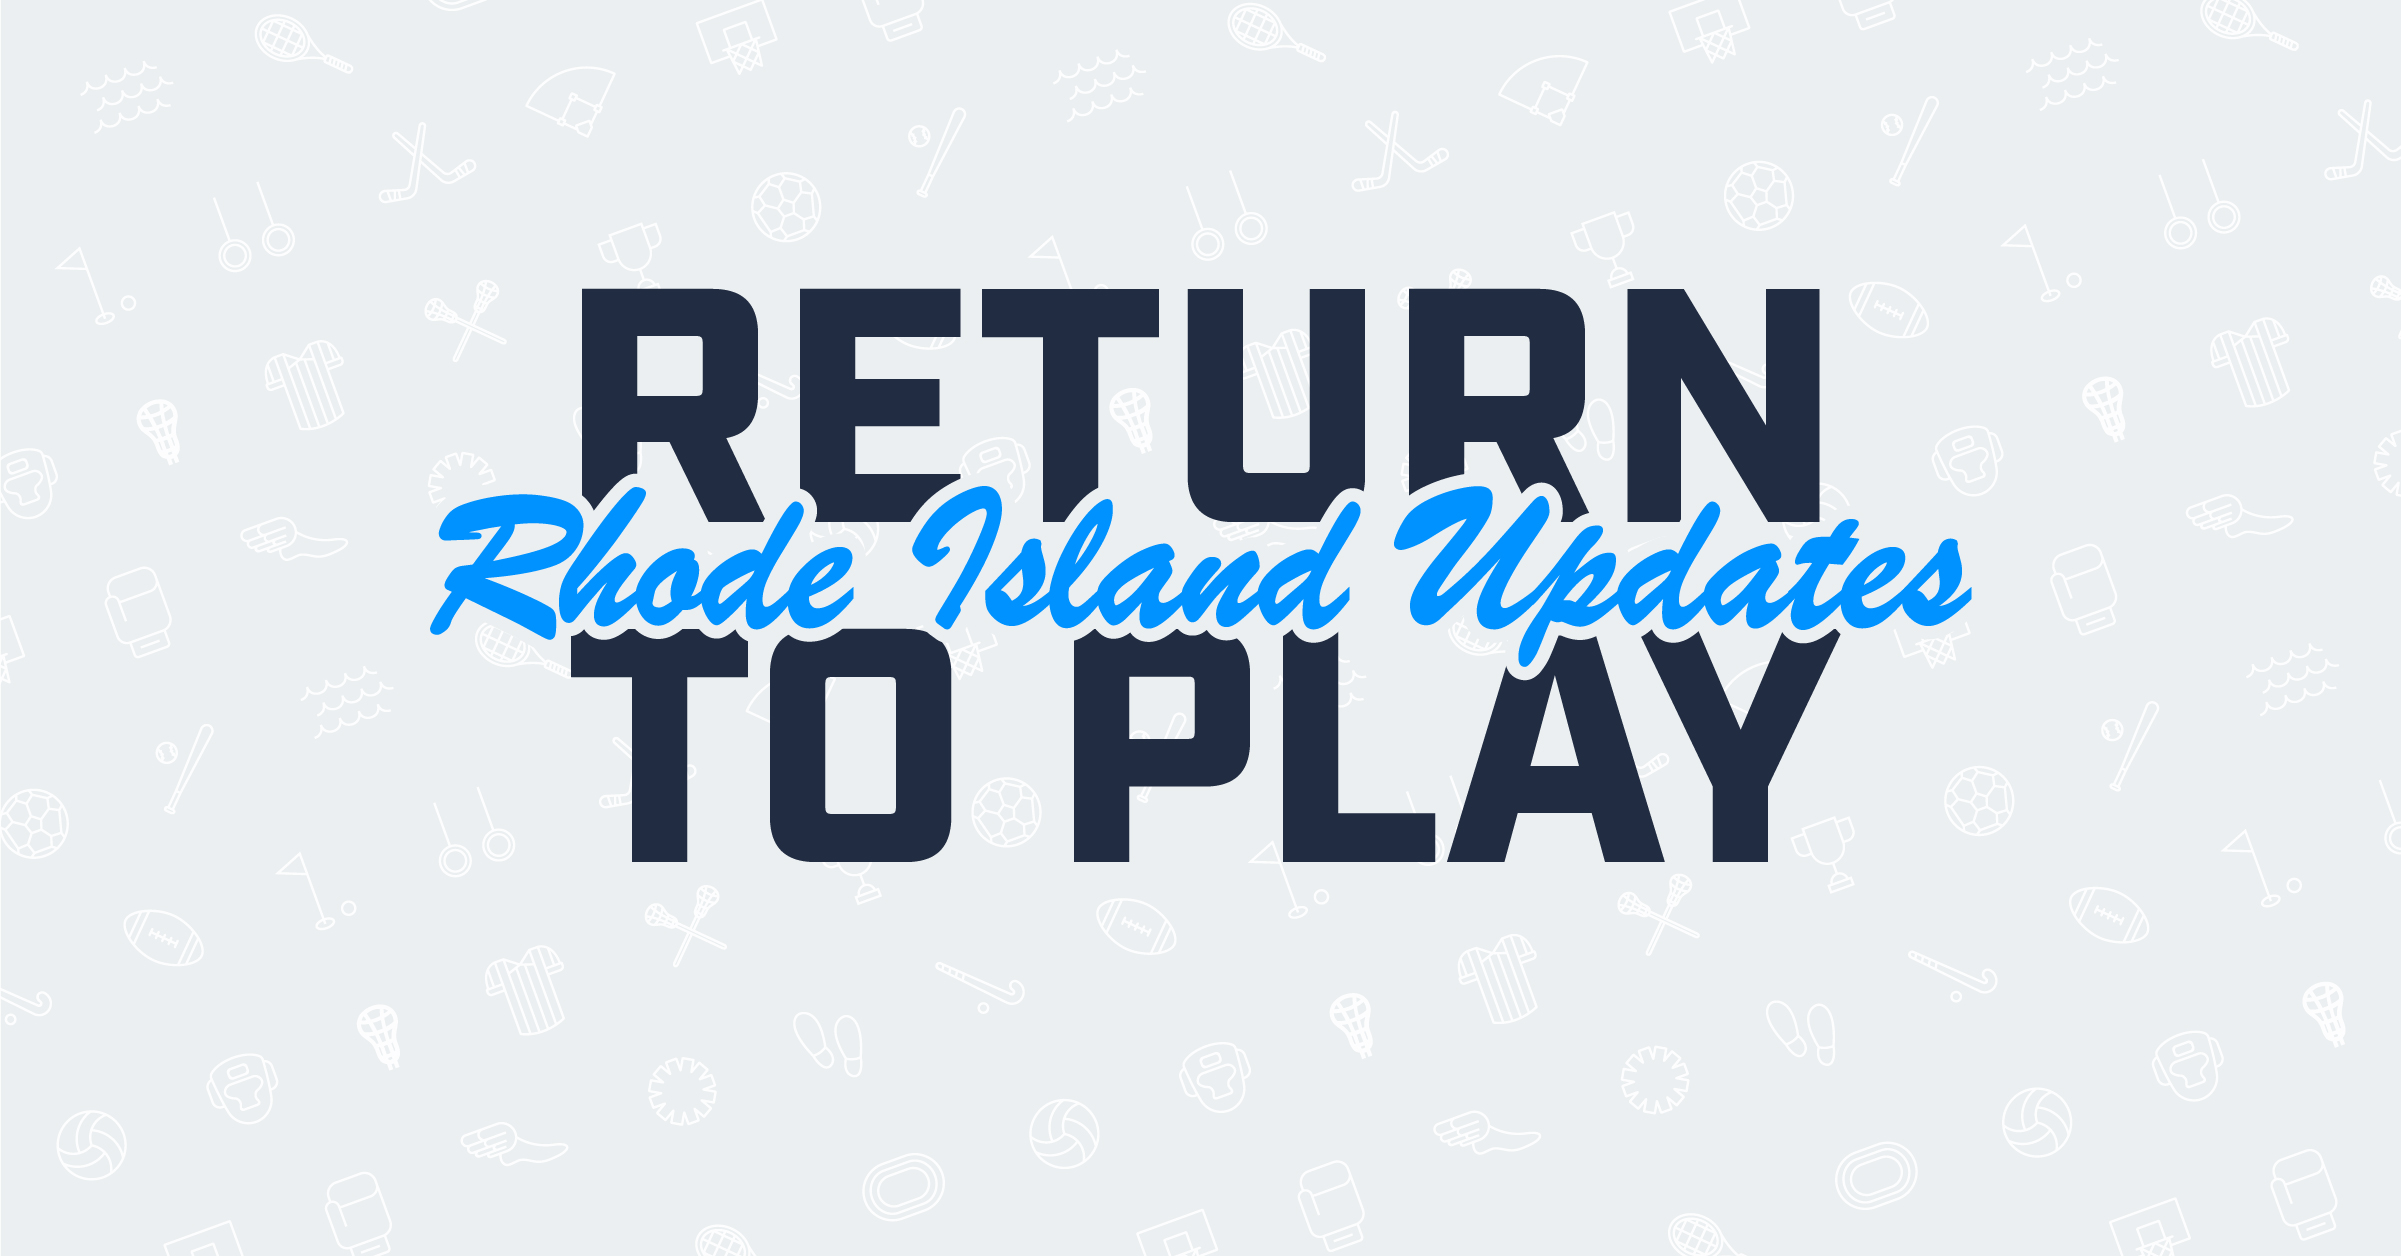 Return to Play: Rhode Island Updates for Youth Sports